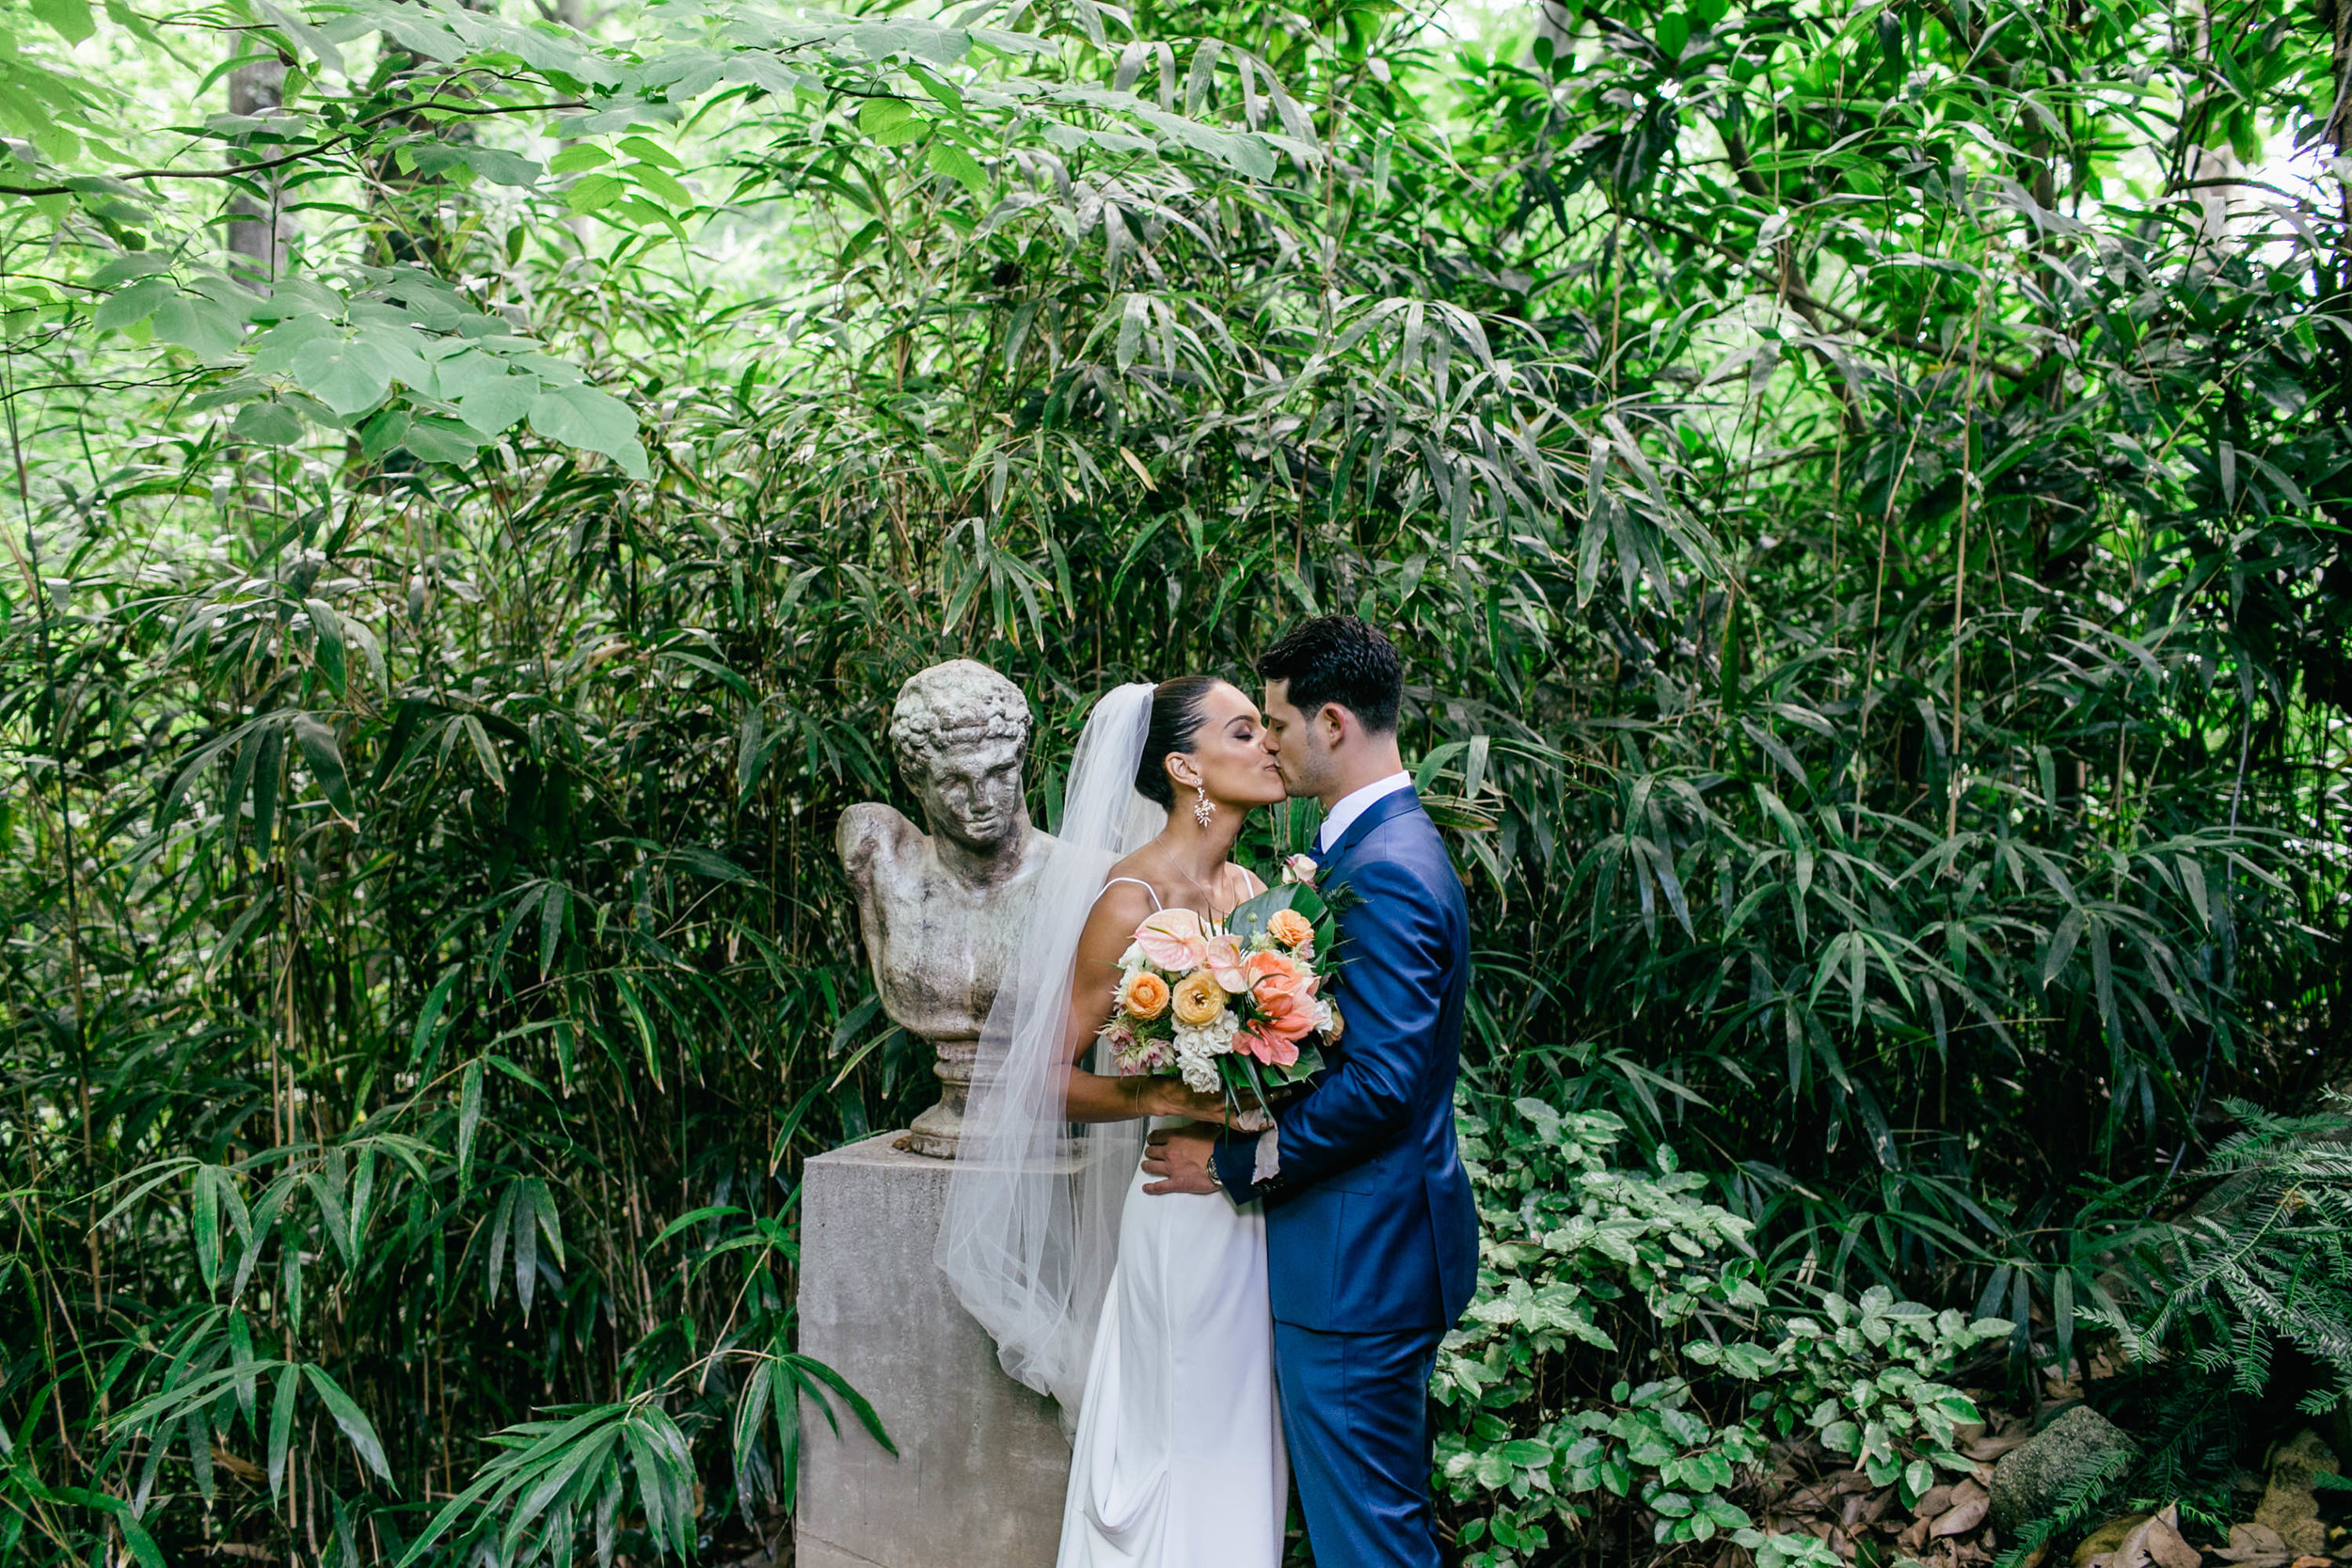 photography-wedding-weddings-natural-candid-dock 5 dc-washington dc-philadelphia-mixed race-editorial-modern-fine-art-005.JPG